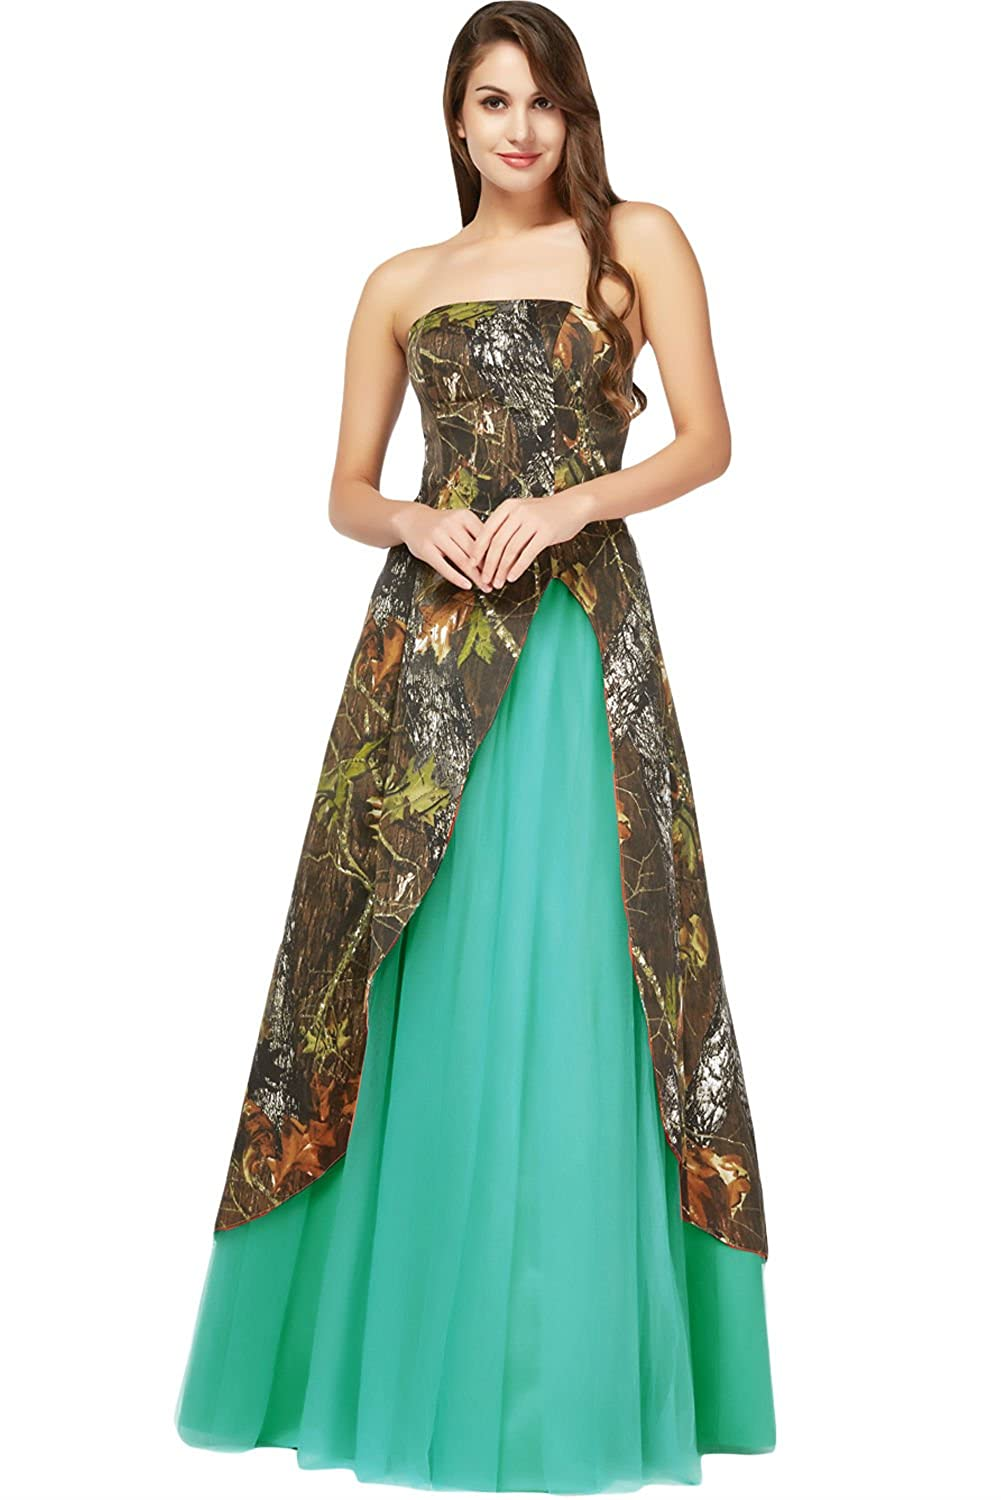 Magnificent Camouflage Prom Dress Image Collection - All Wedding ...